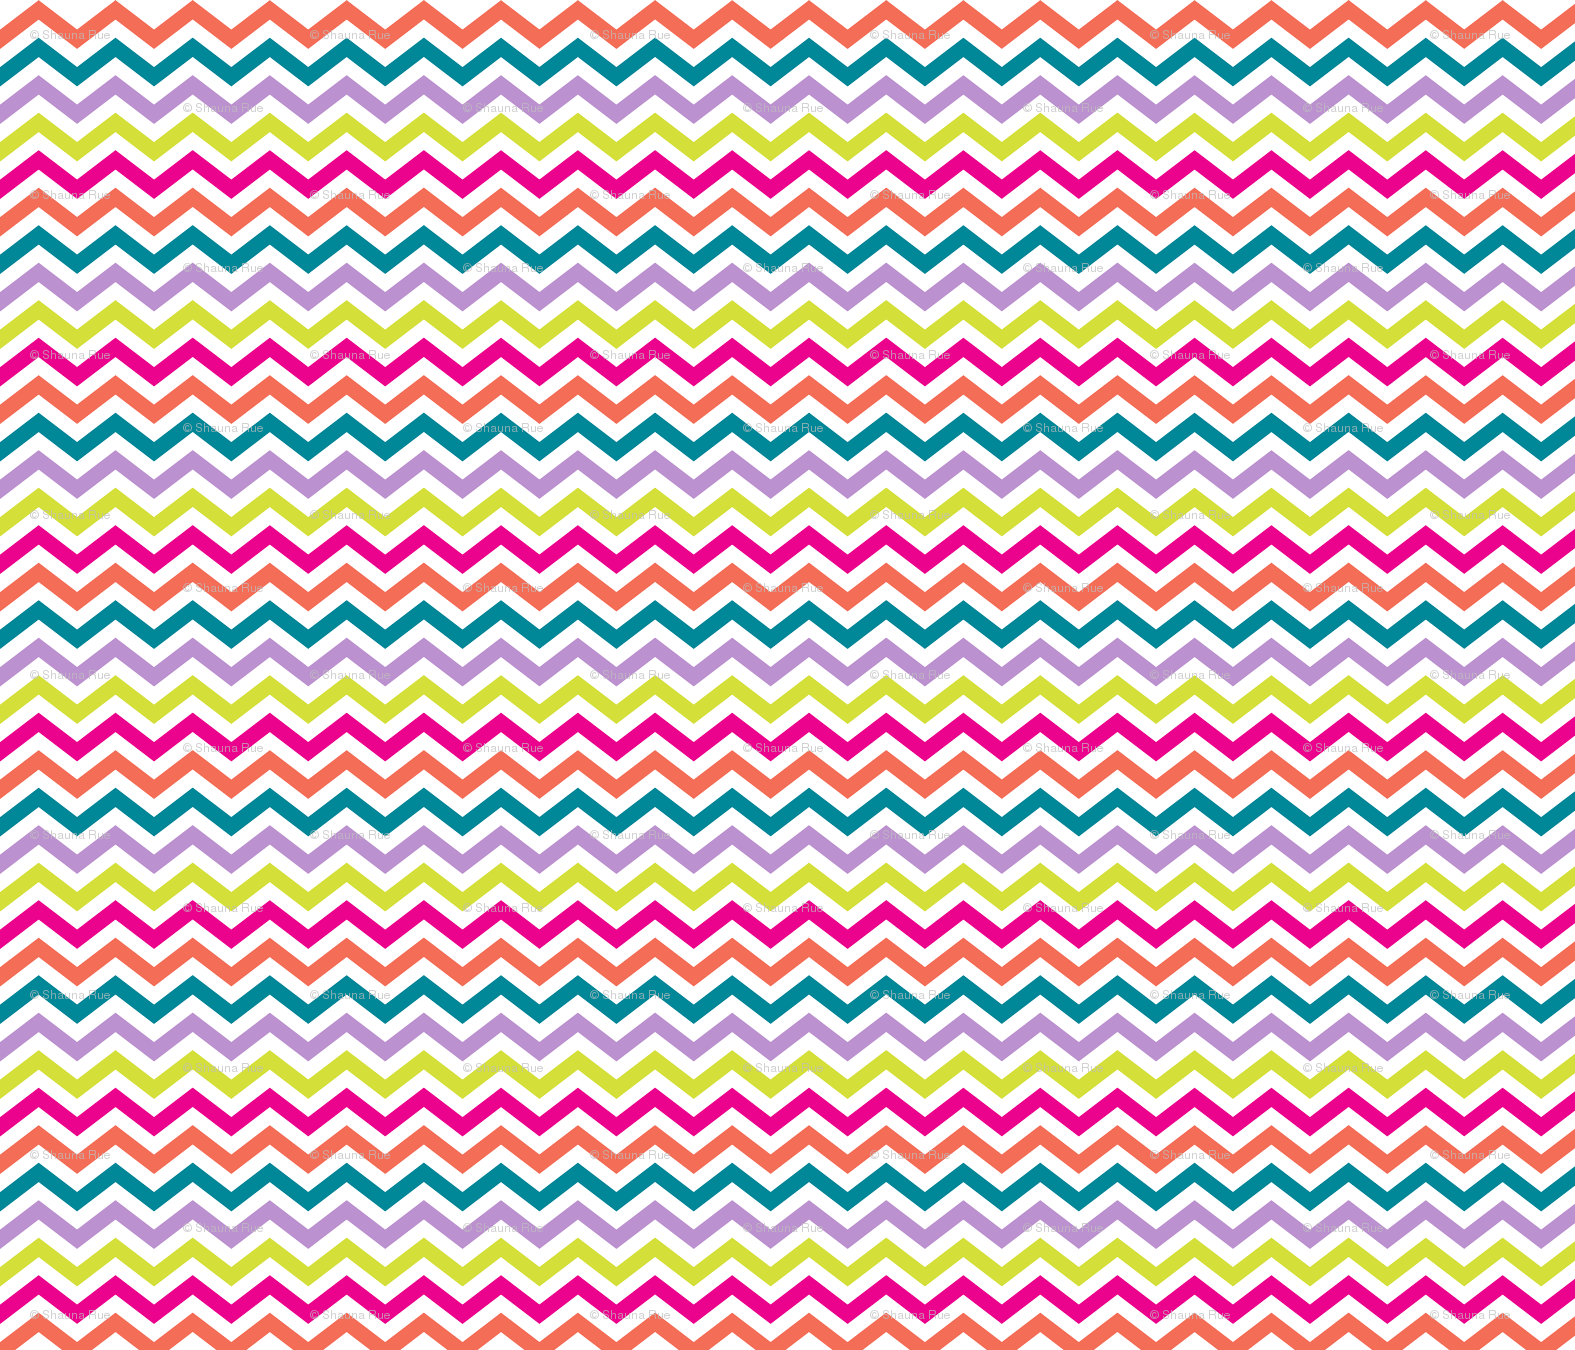 Rainbow chevron background